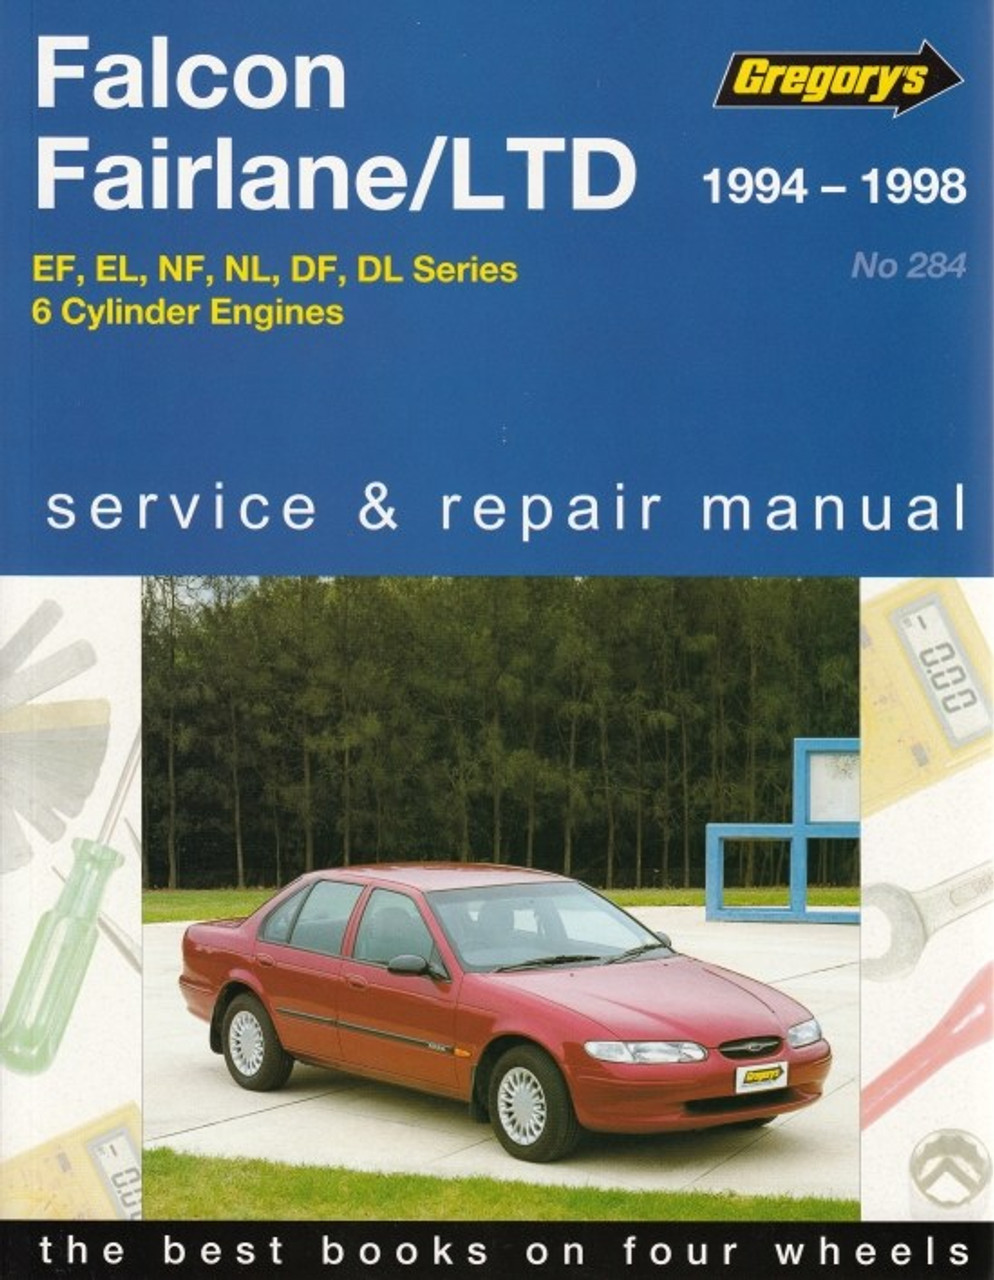 ford falcon fairlane ltd 4l series 6 cylinder 1994 1998 rh automotobookshop com au Ford Falcon Side Ford Falcon Side